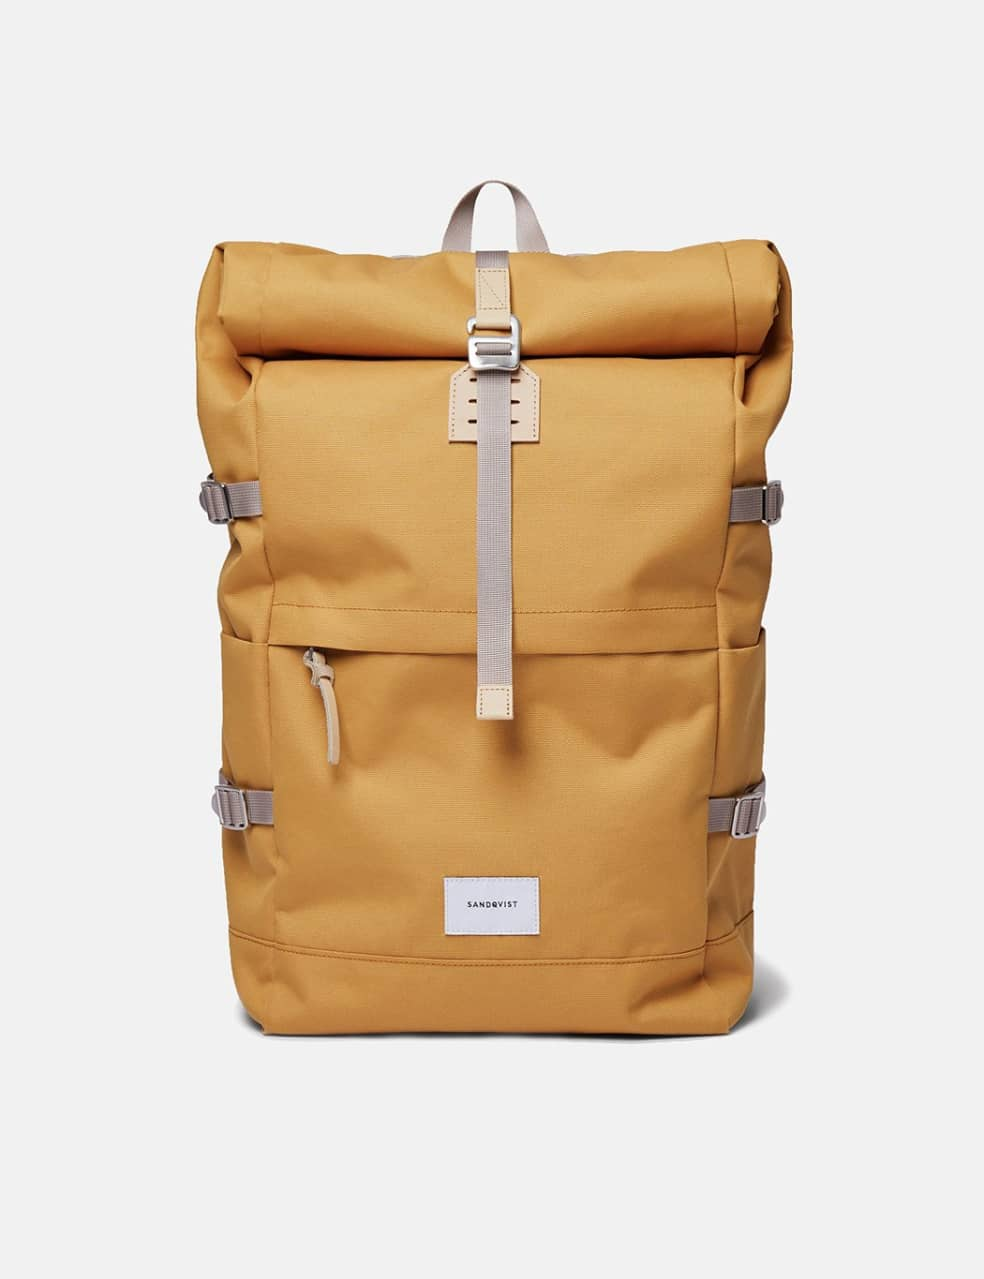 Sandqvist Bernt Backpack - Yellow/Natural Leather | Backpack by Sandqvist 1